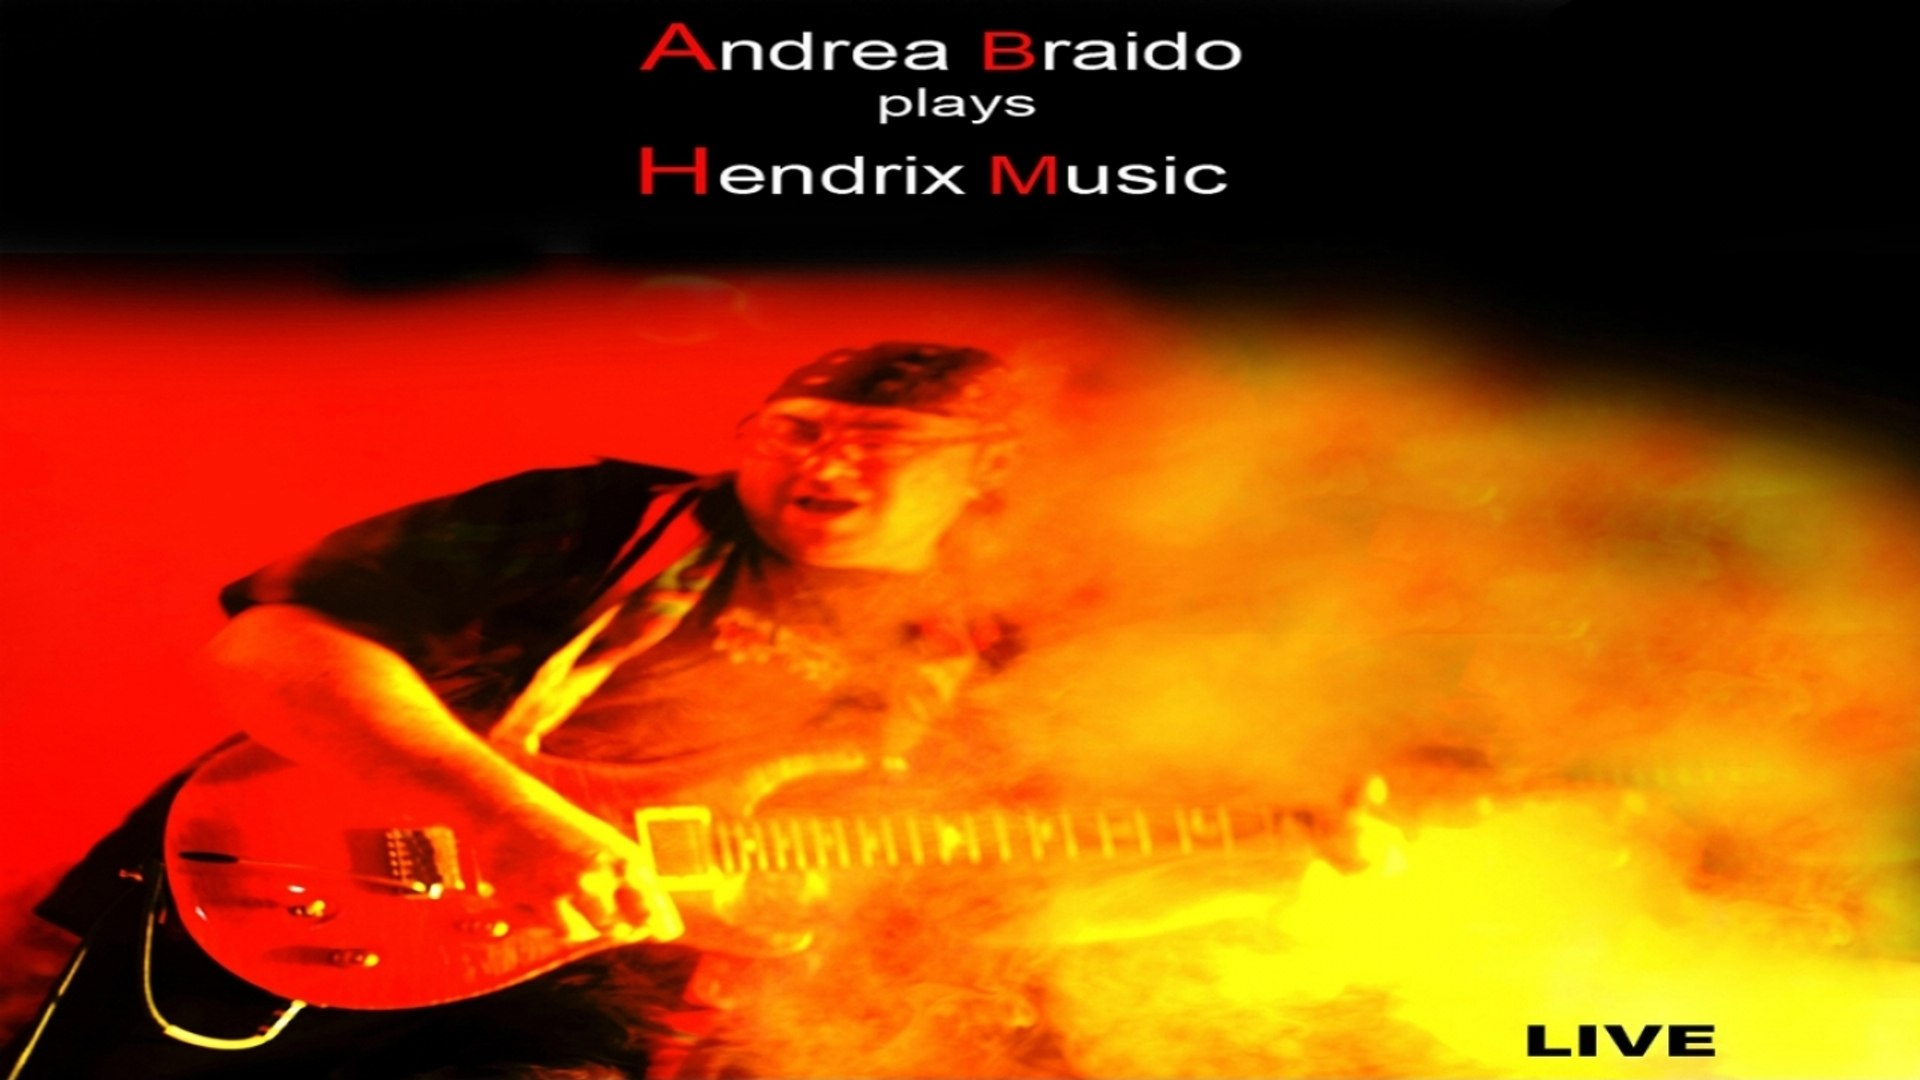 Andrea Braido - Little Wing (Live) - Taken from the Album: Andrea Braido Plays Hendrix Music